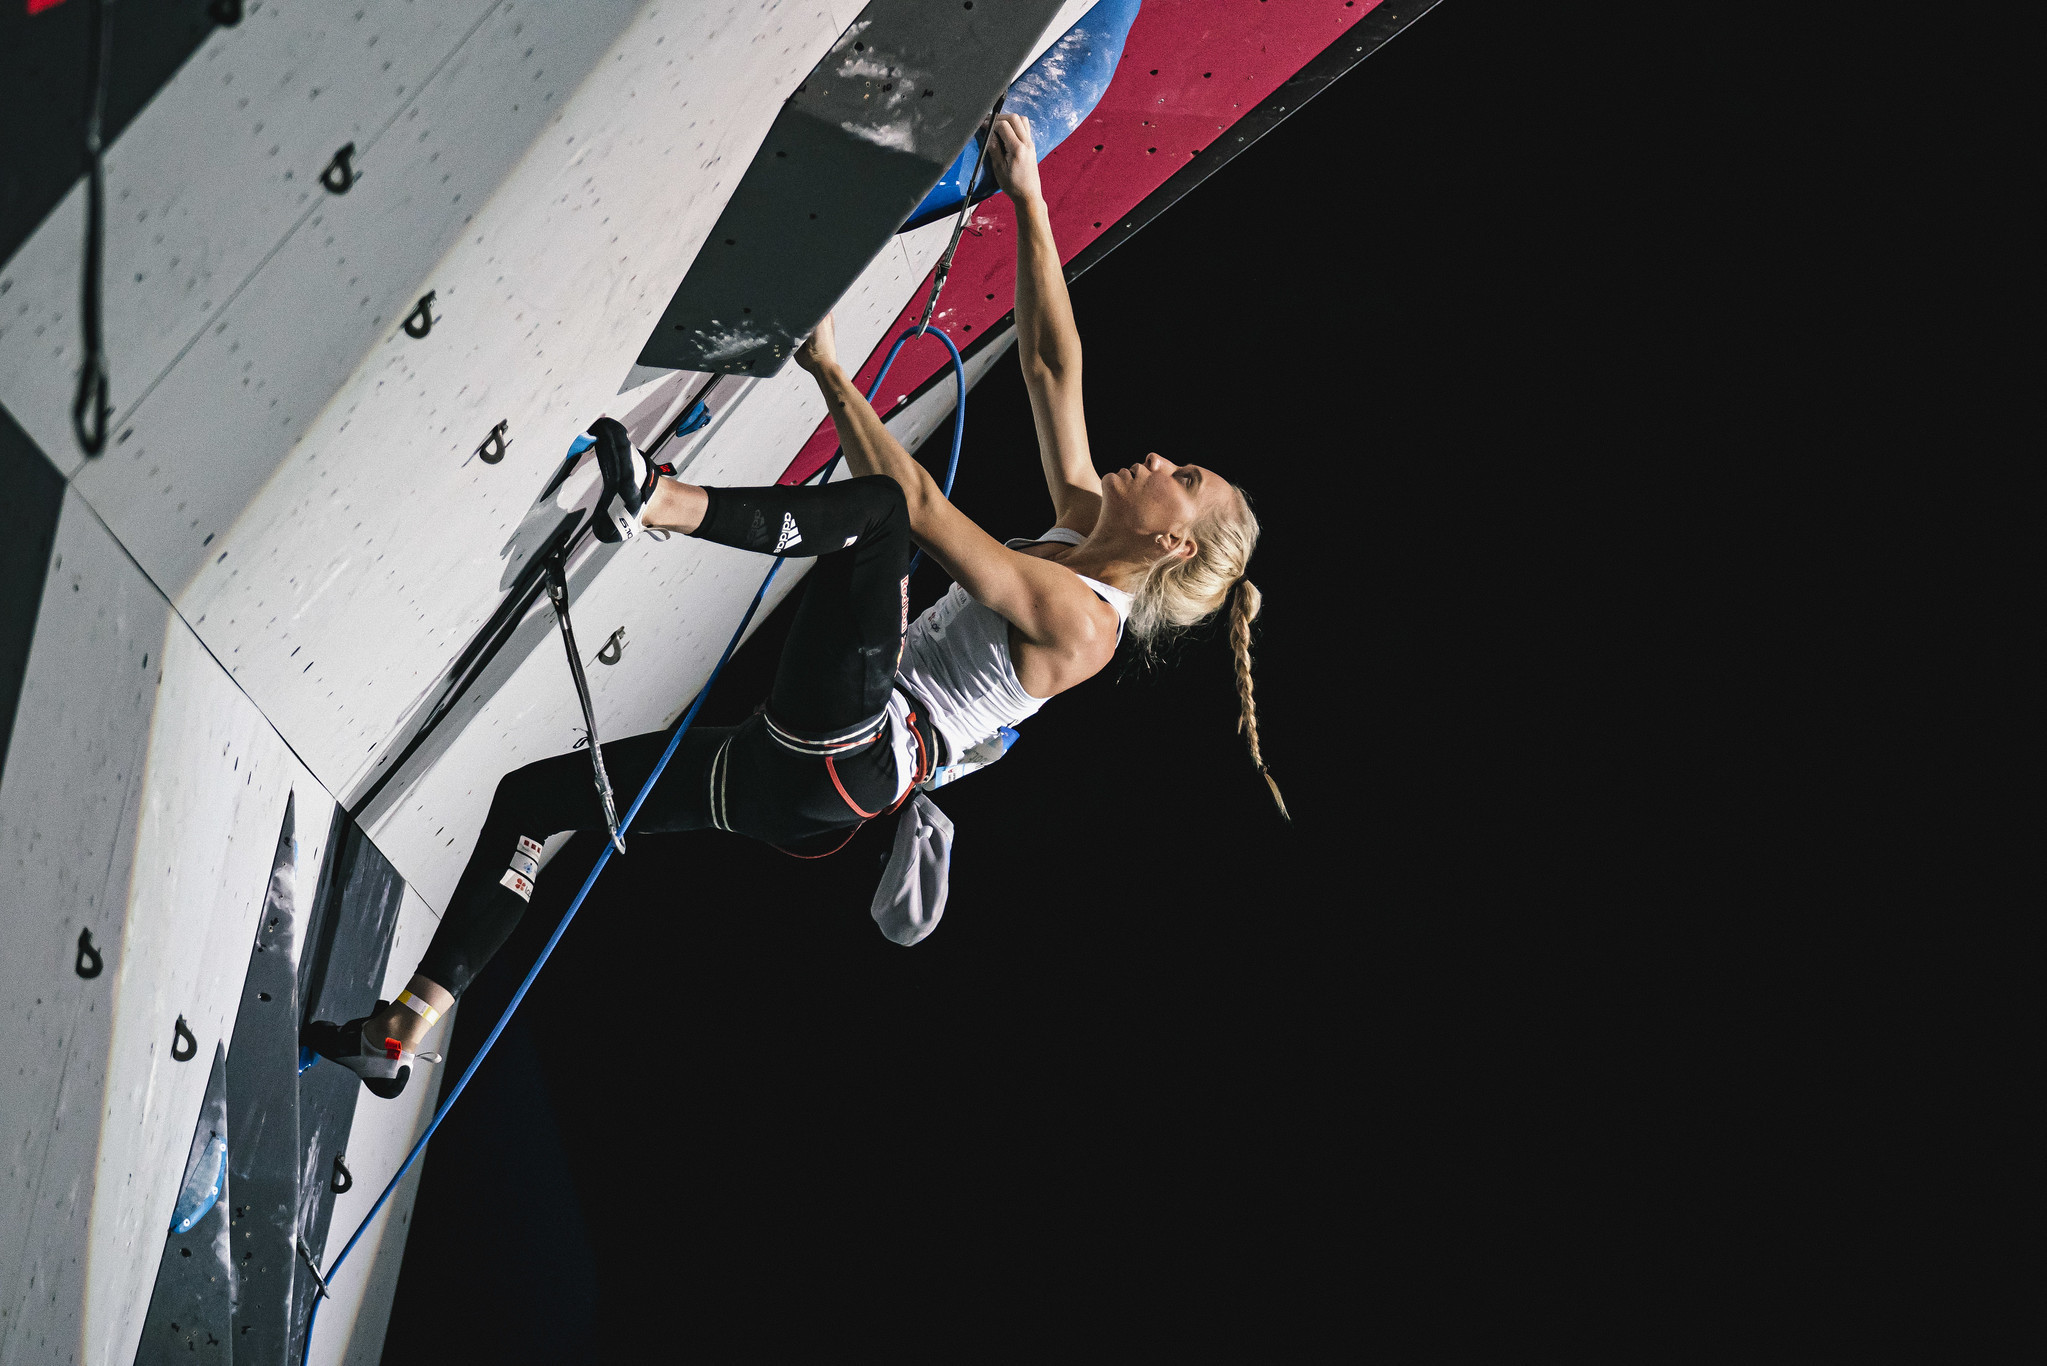 Garnbret adds lead to boulder gold at IFSC World Cup in Villars